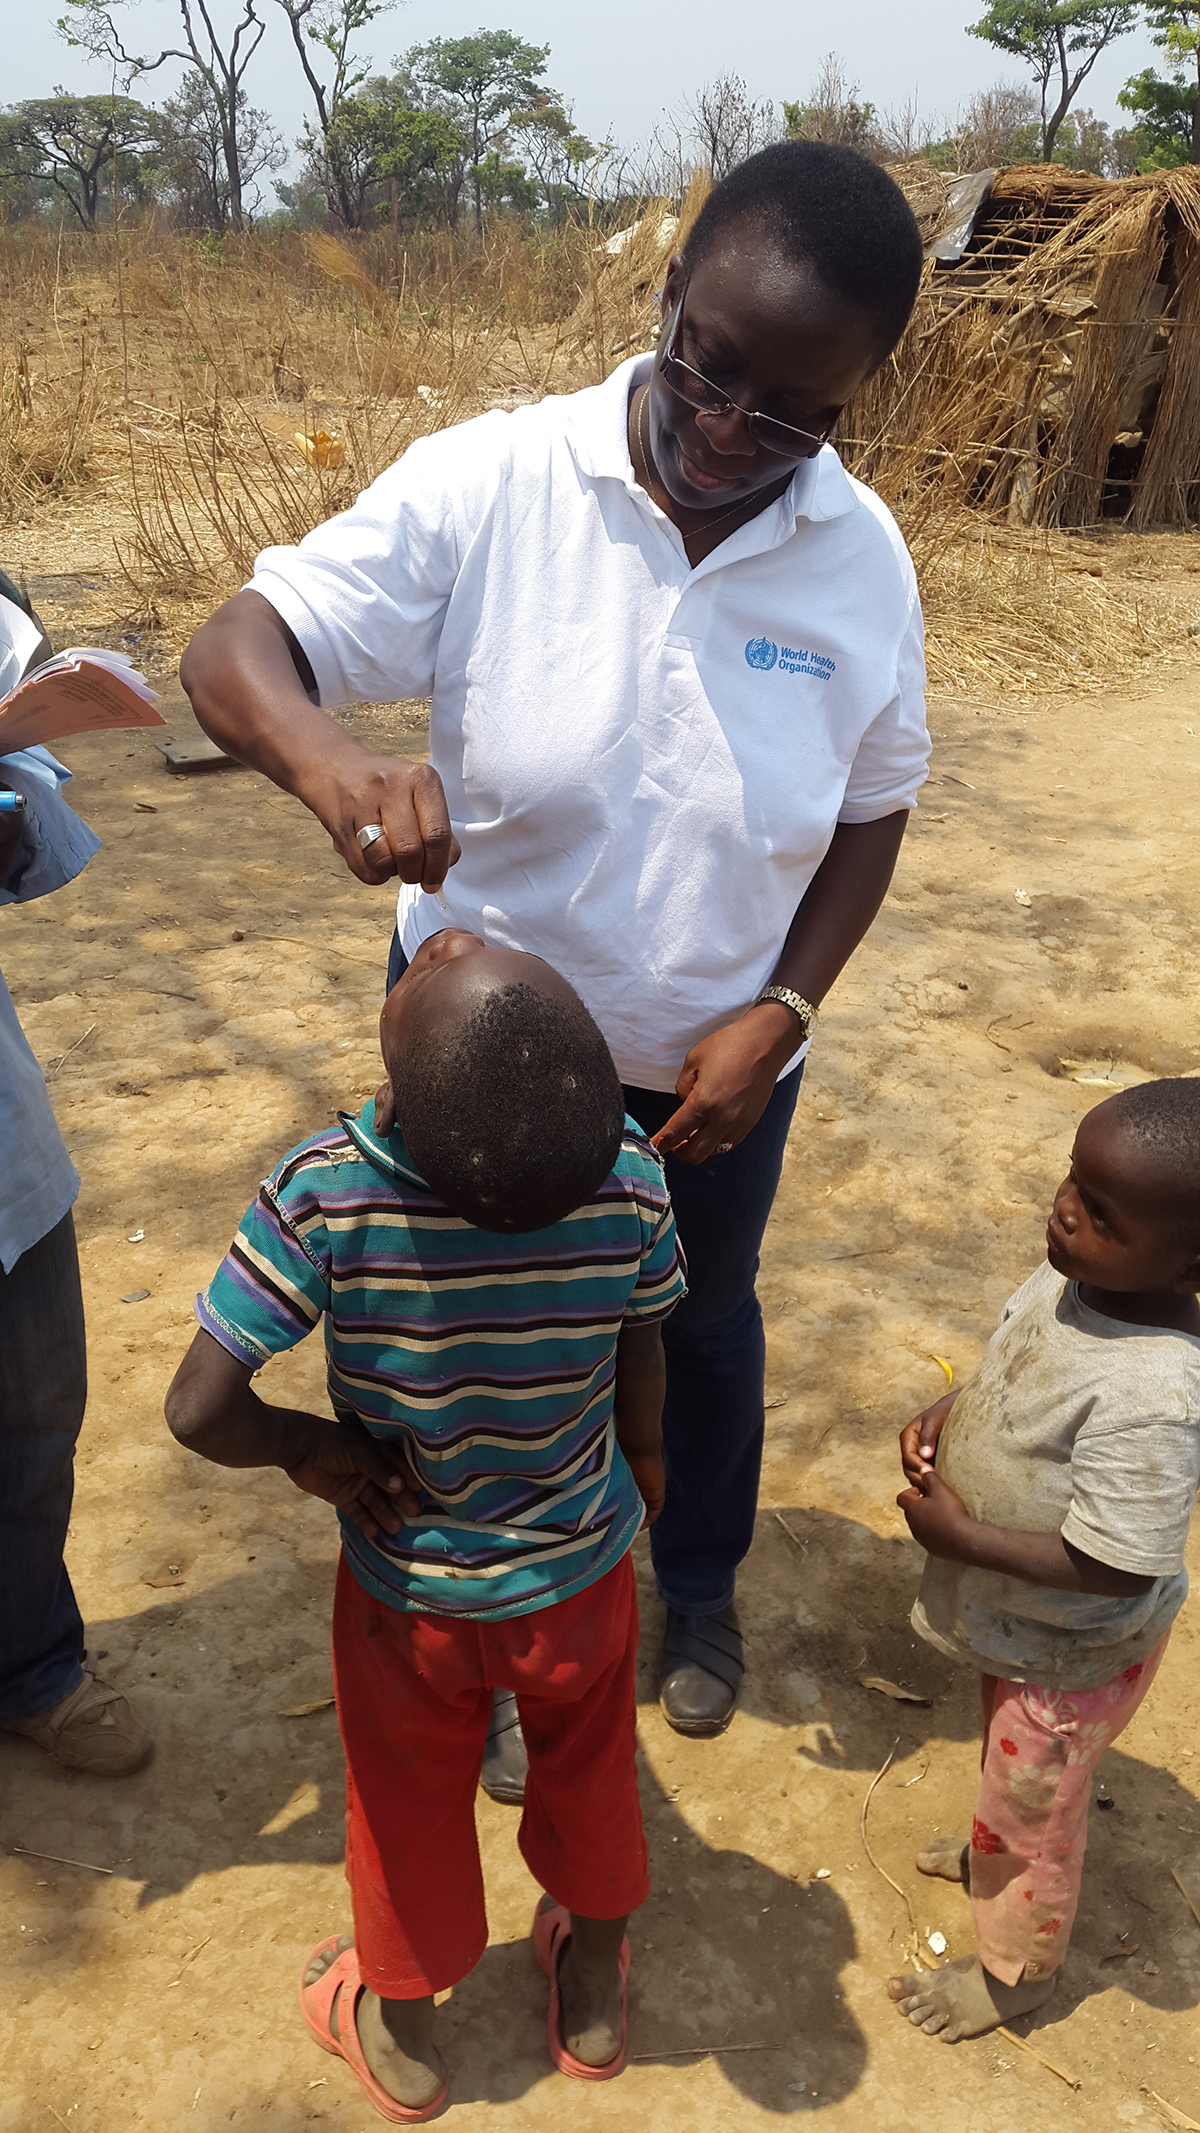 Democratic Republic of the Congo: Dr. Aissata Diaha from CDC's Global Immunization Division administering the oral polio vaccine to a child during the polio immunization campaign in a remote area of Lubumbashi.